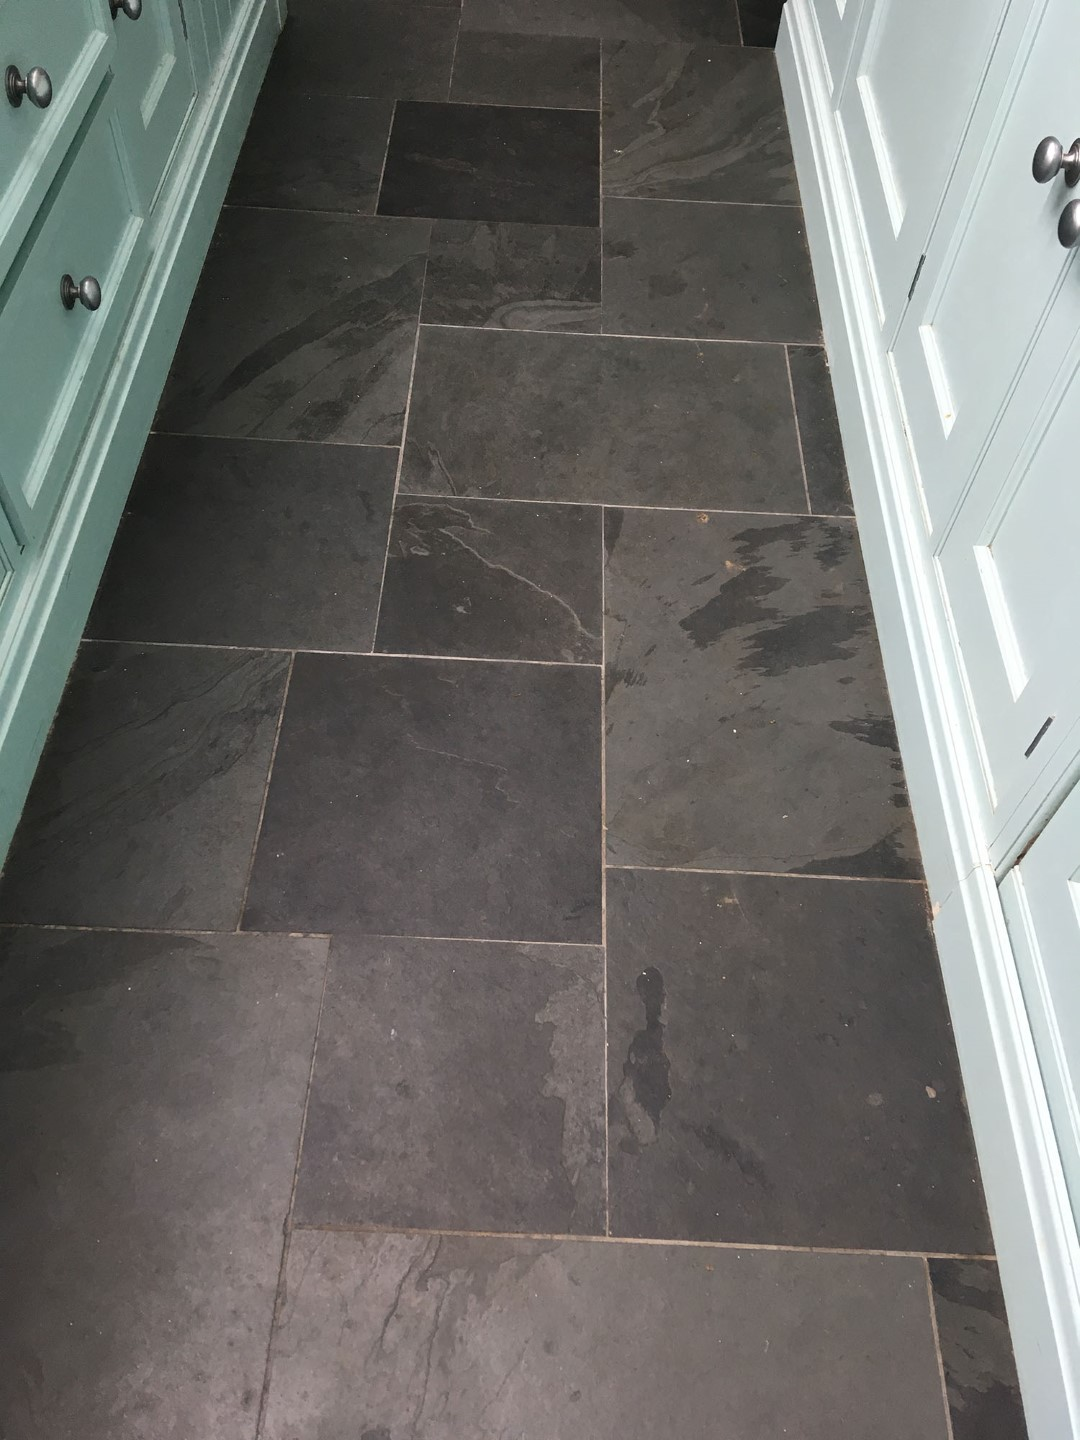 Slate Floor Before Cleaning Walton-on-Thames